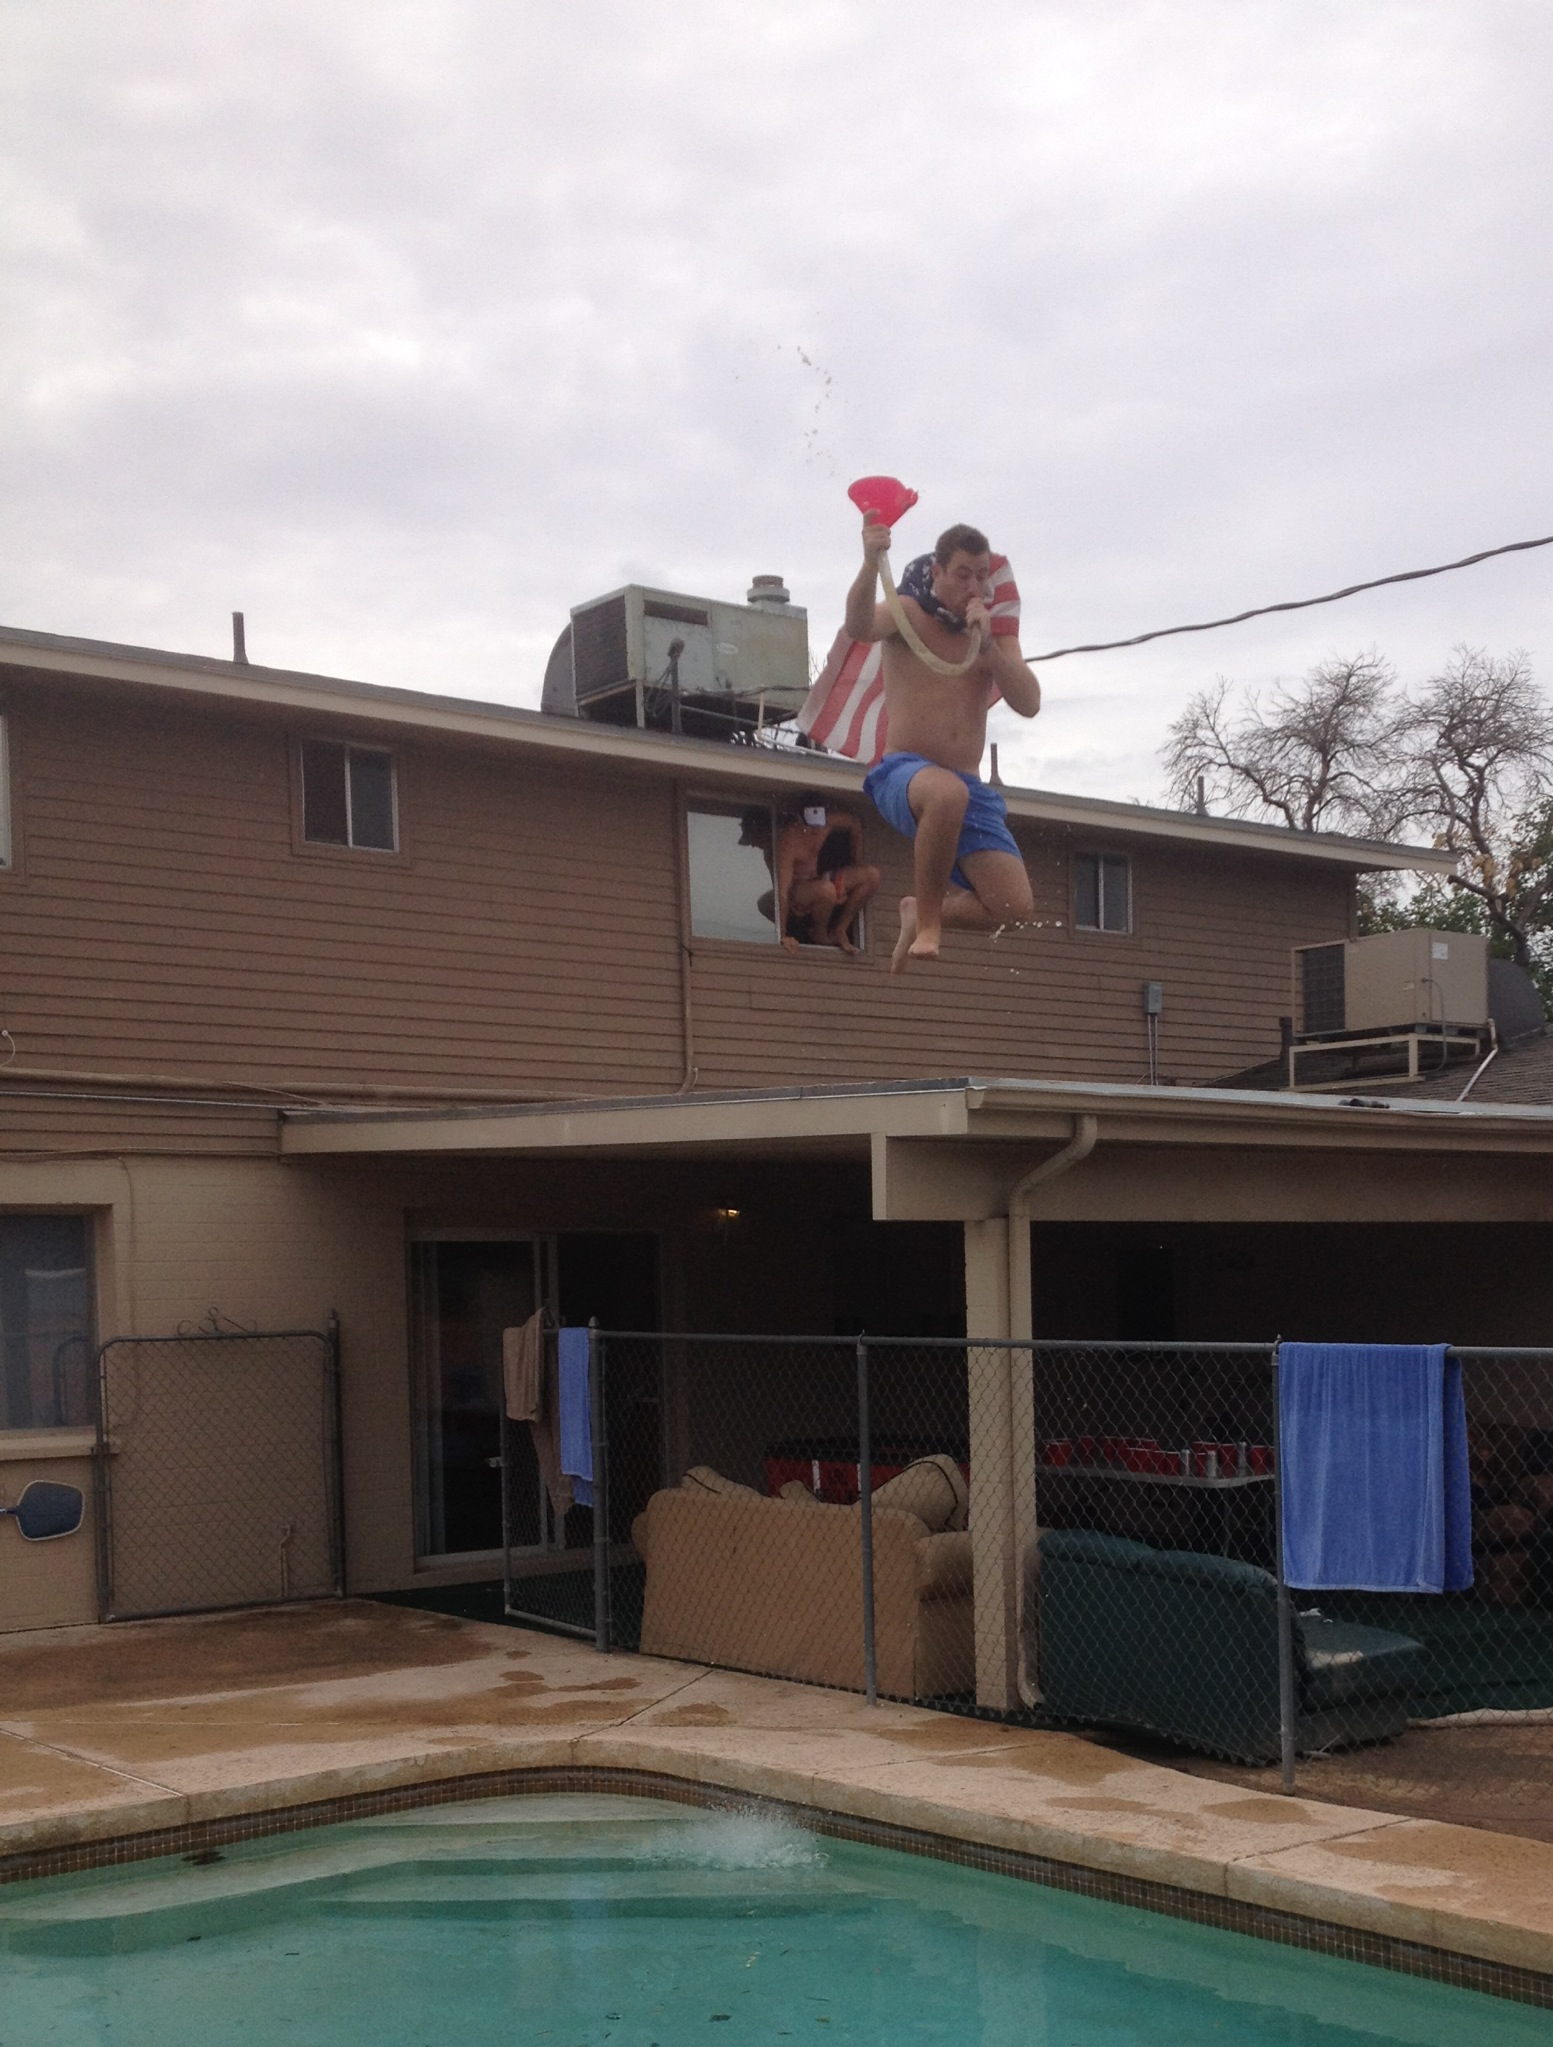 Mid-air beer bong for America. TFM.